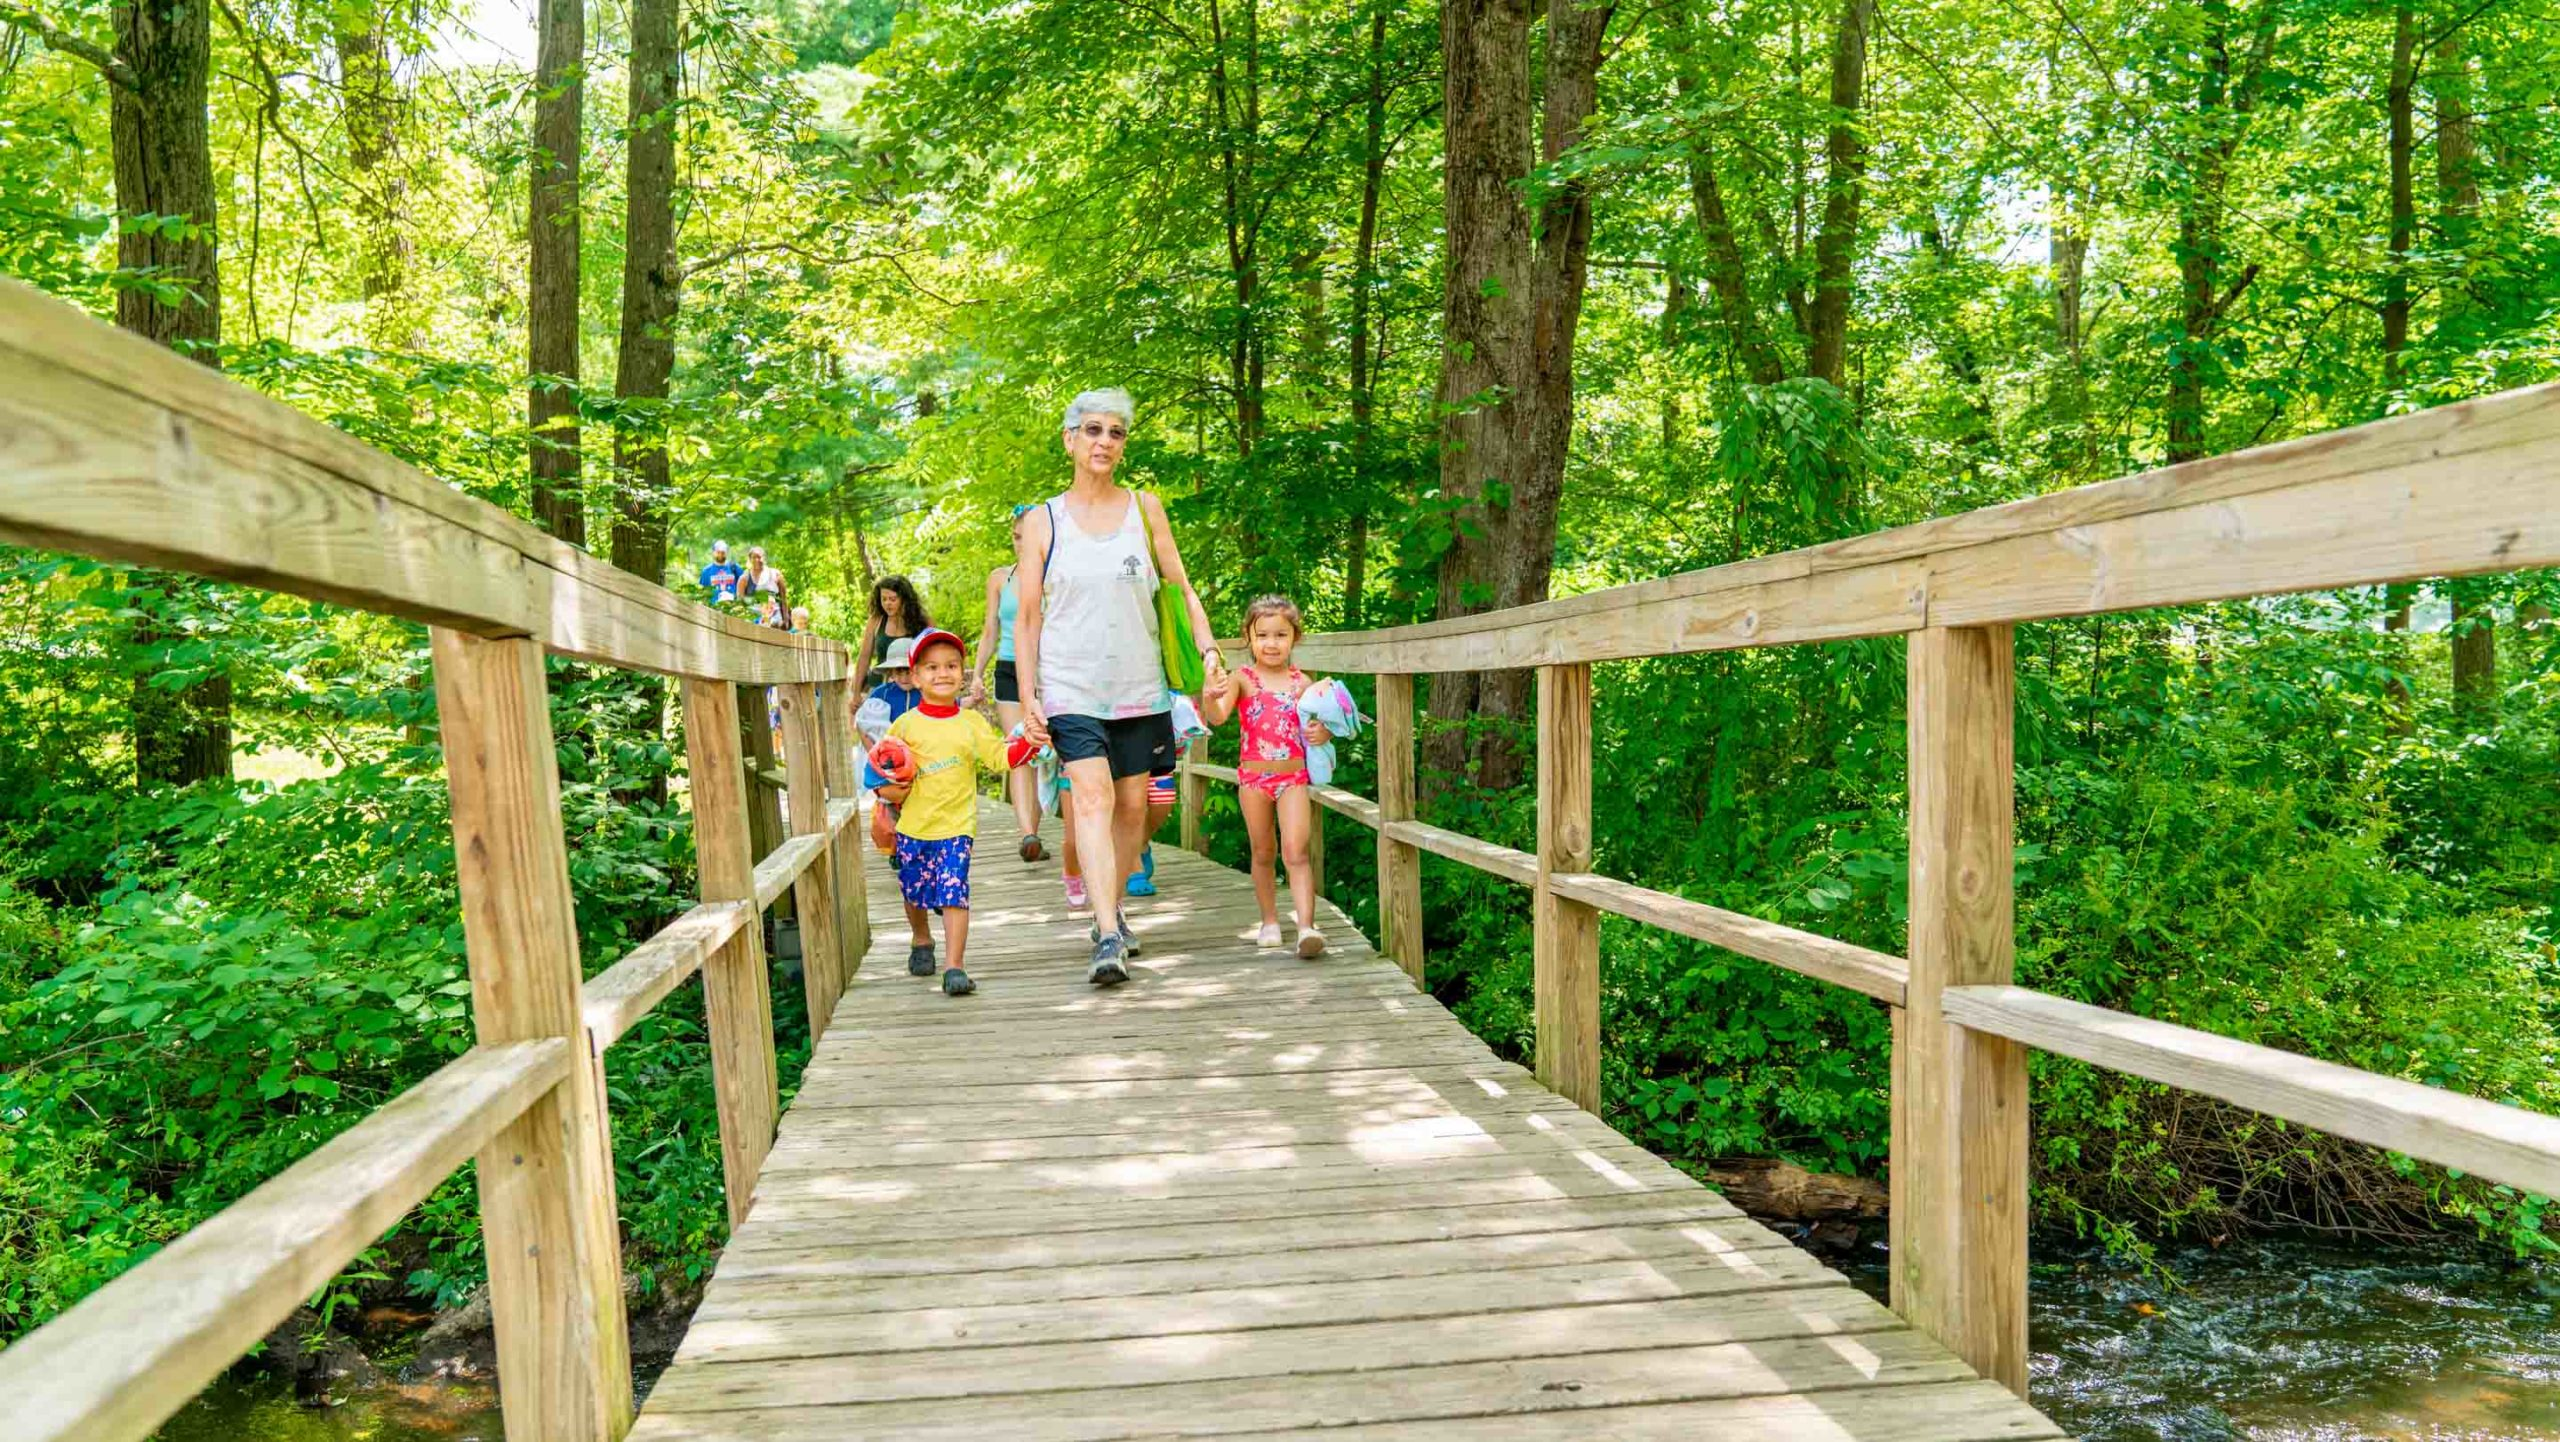 Counselor walking with young campers over a bridge in the woods